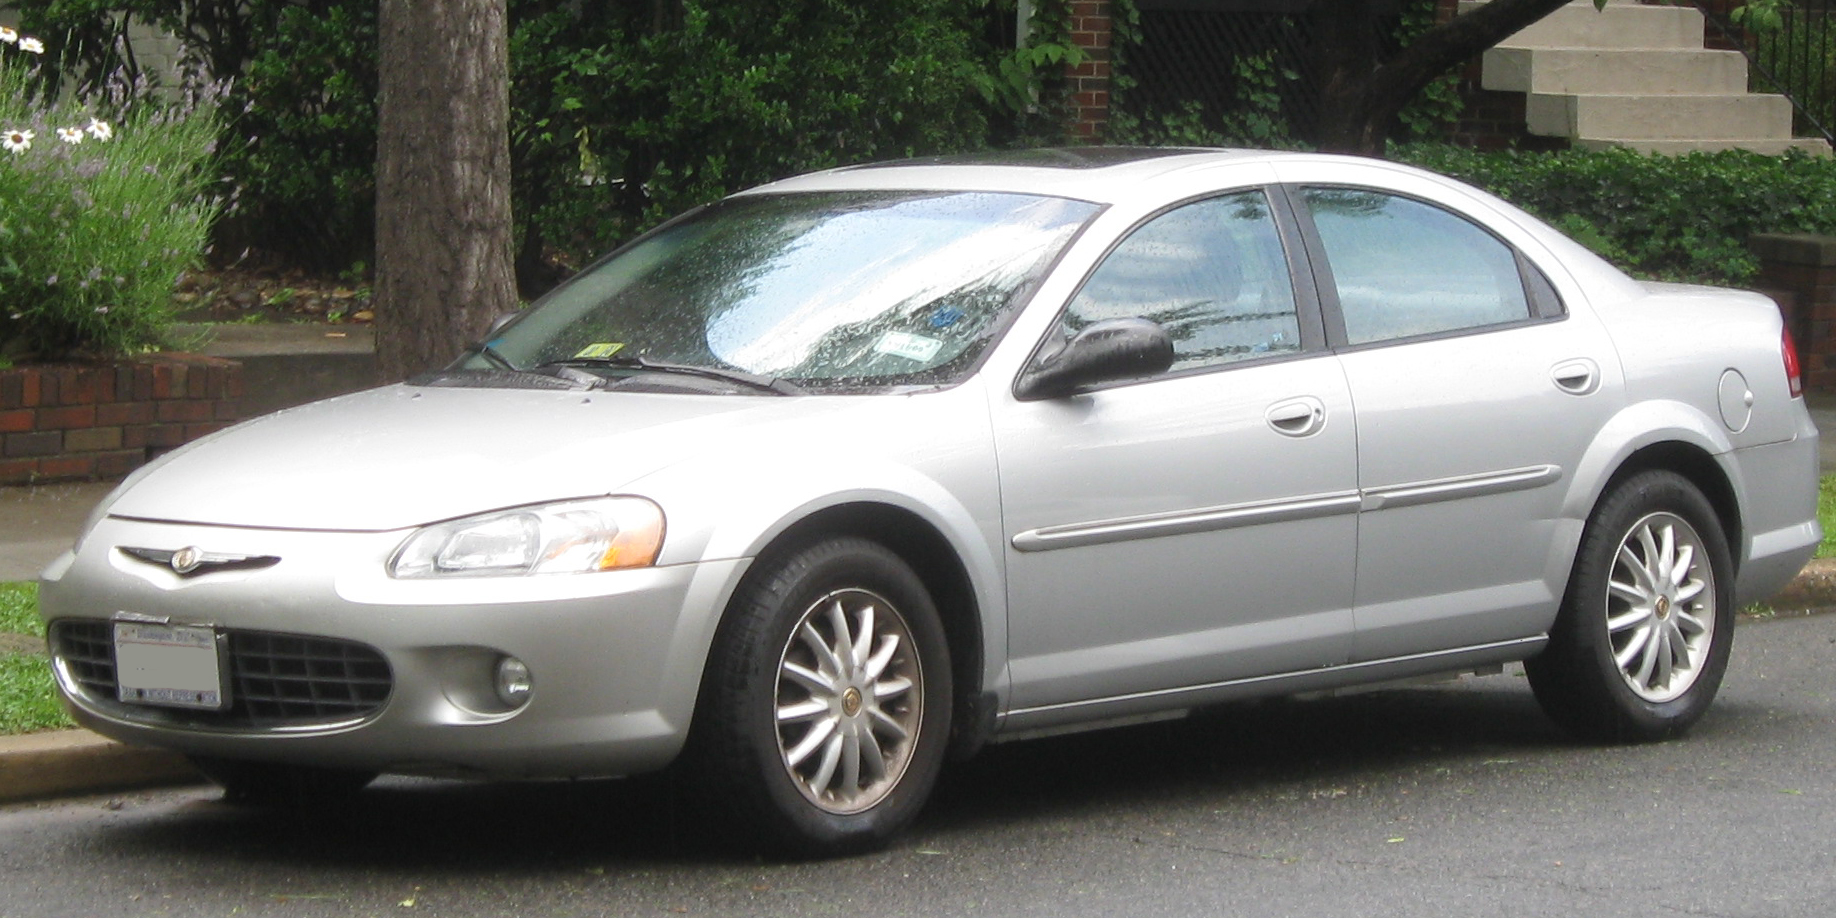 2002 Chrysler Sebring Information And Photos Momentcar